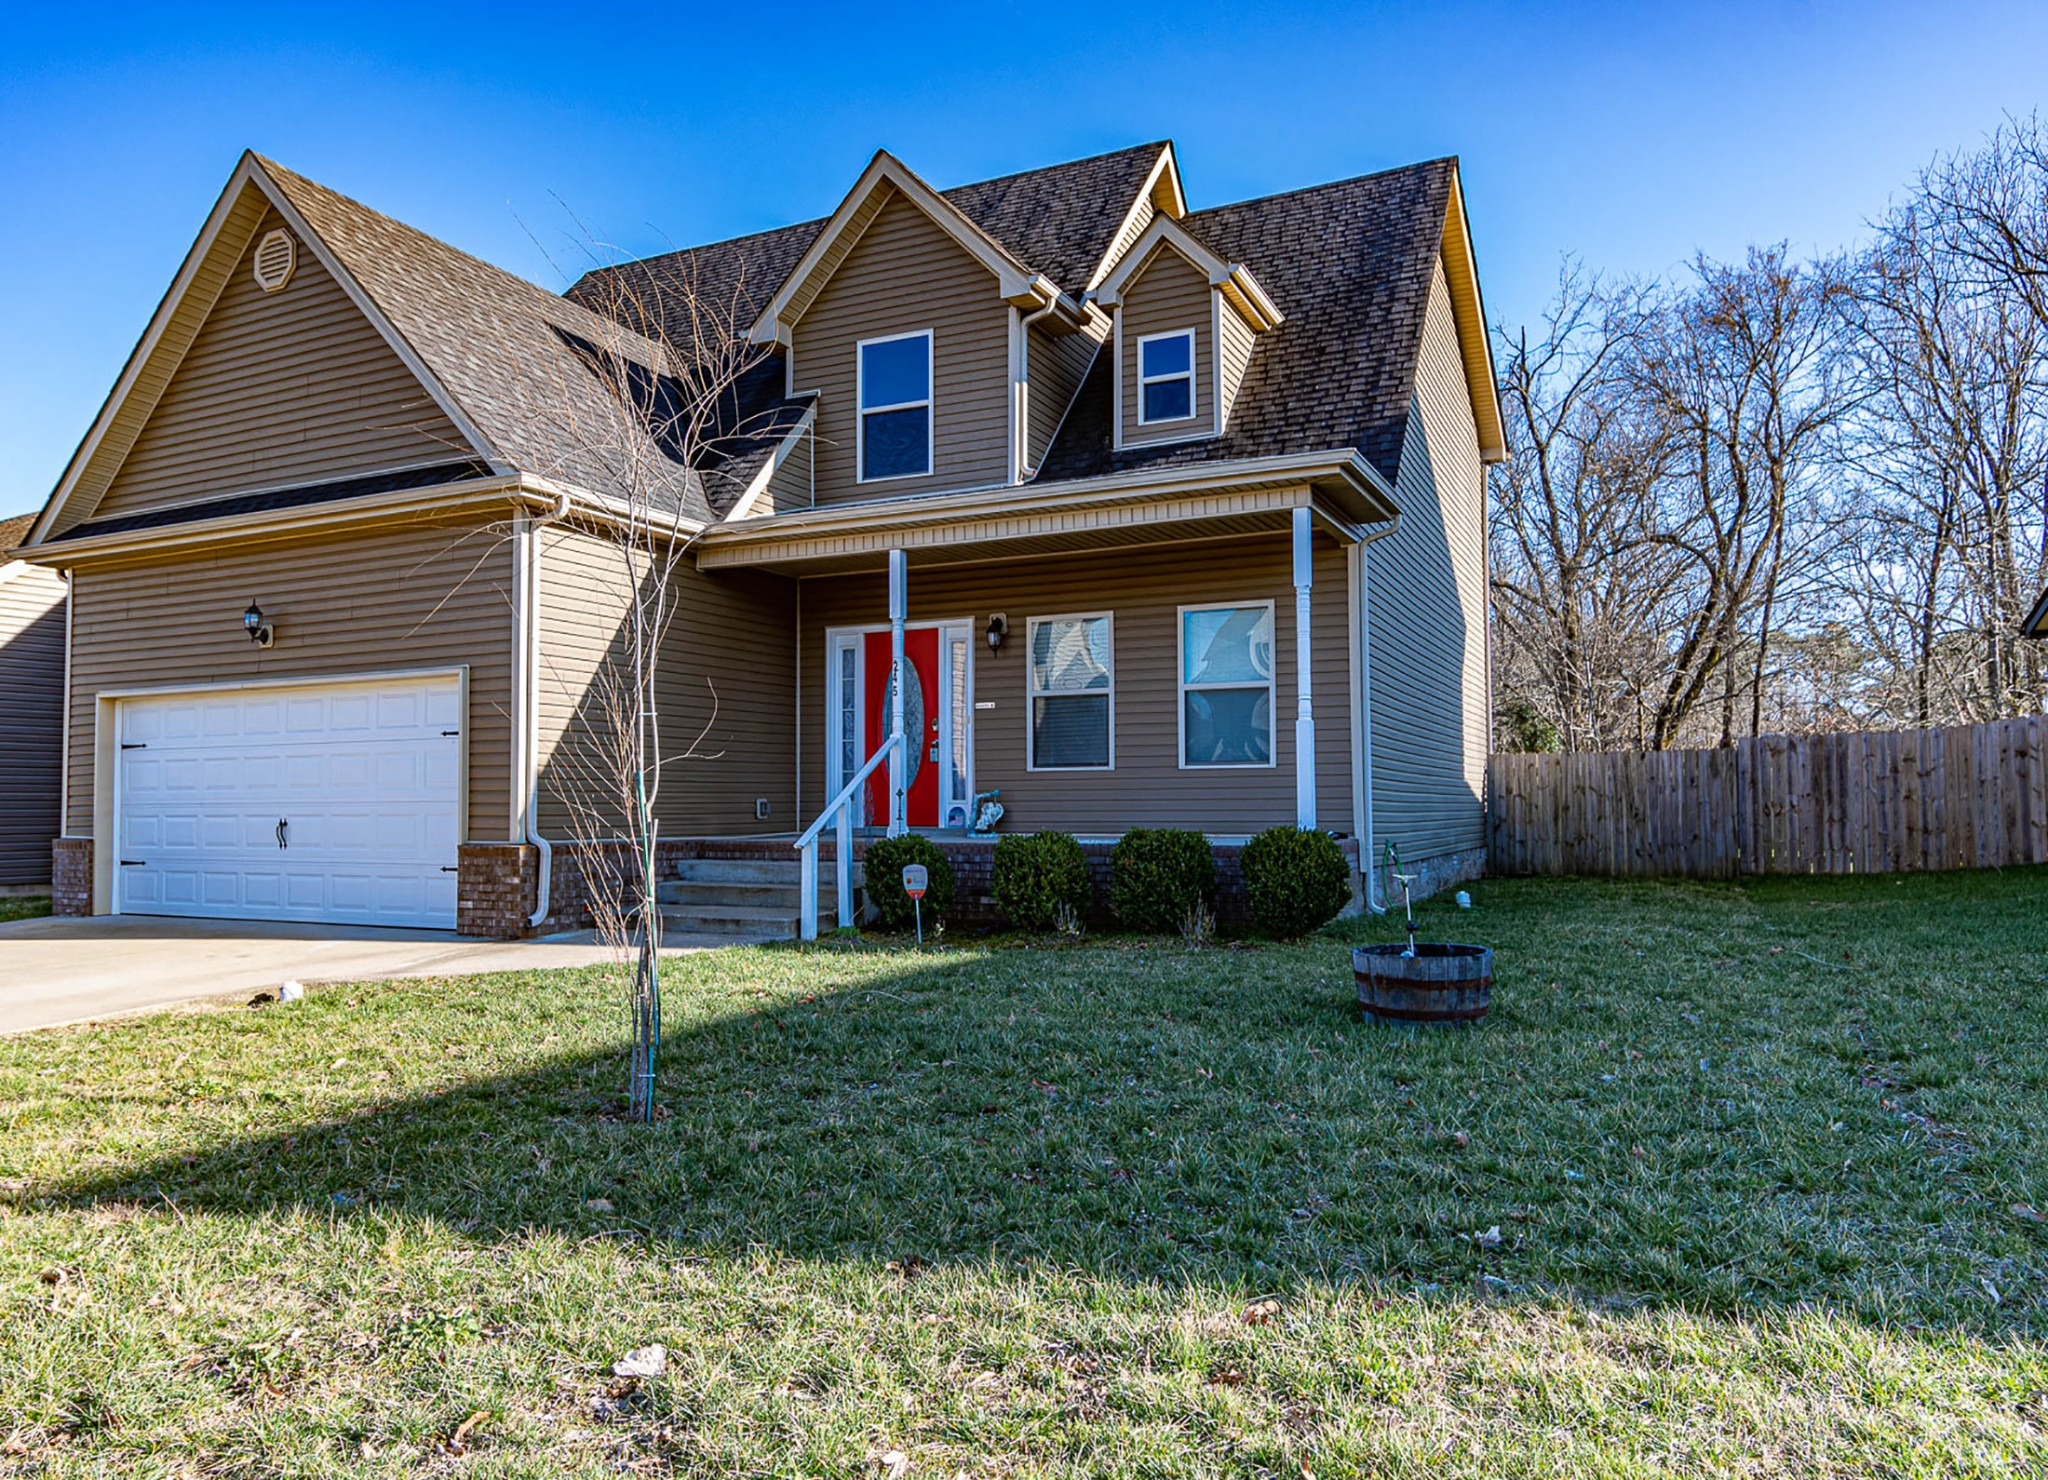 245 Azalea Dr, Oak Grove, KY 42262 - Oak Grove, KY real estate listing